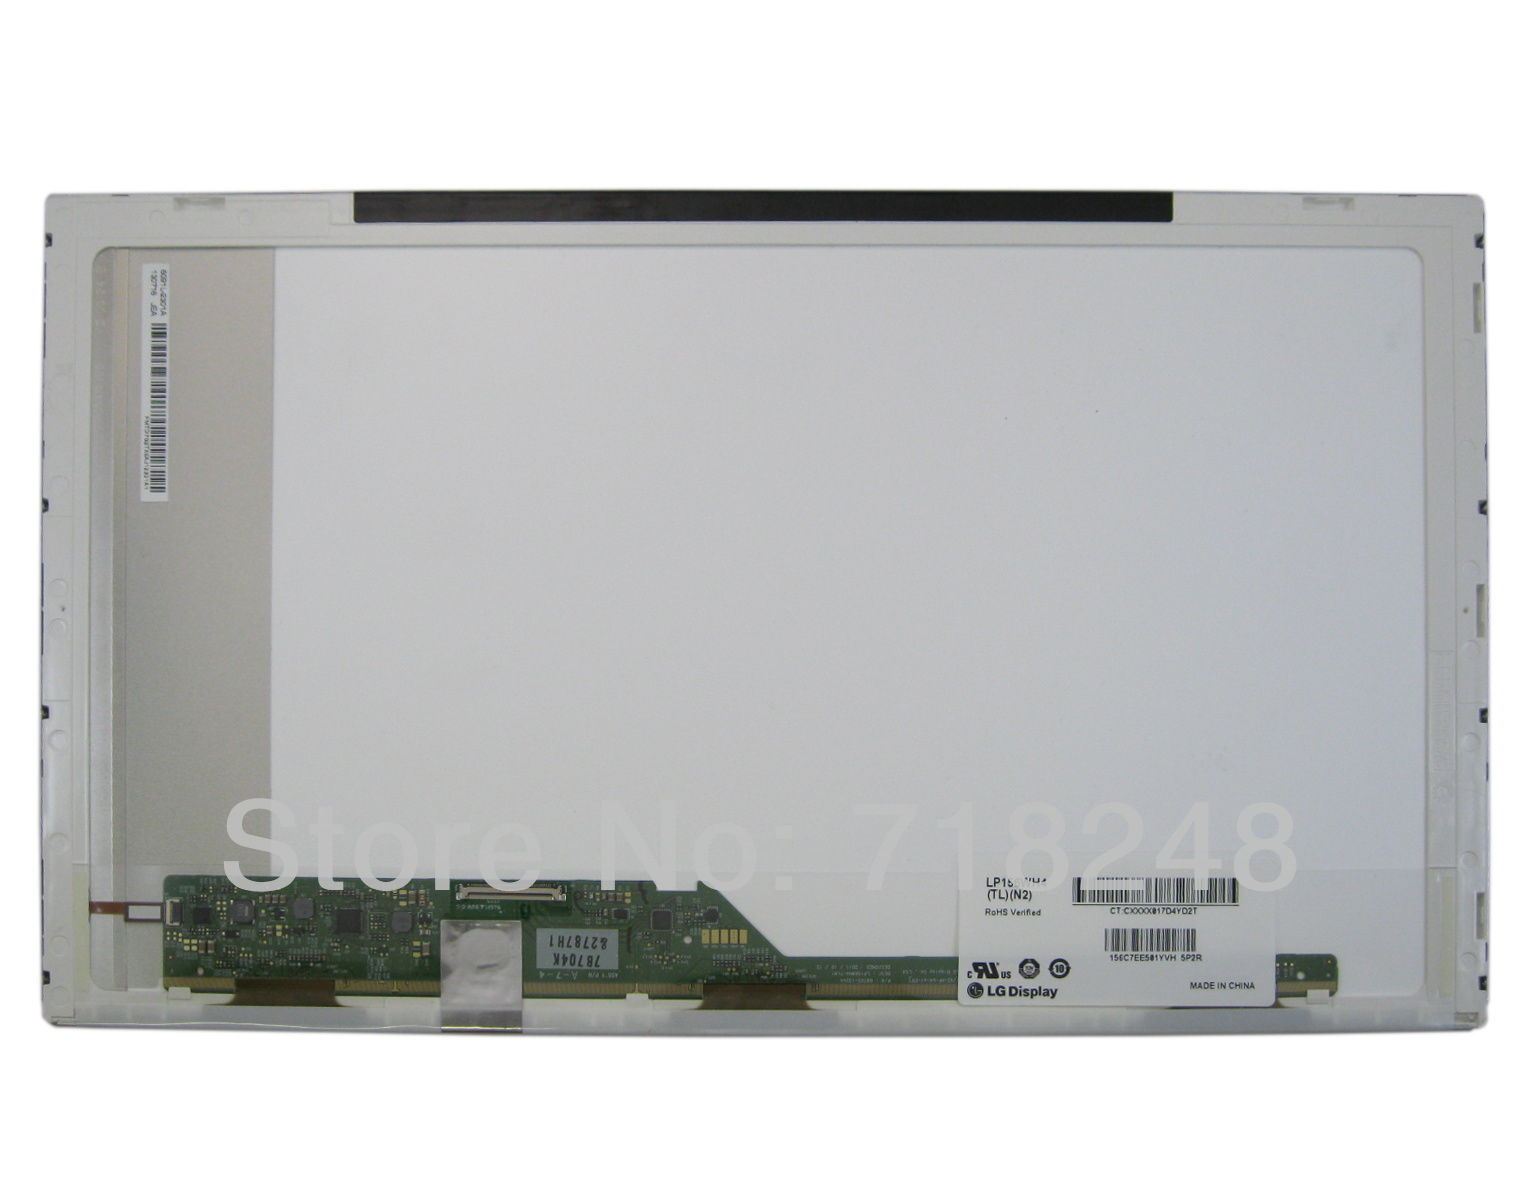 Free Shipping LCD Screen laptop LED dispaly LTN156AT05 LTN156AT05-307 LP156WH4 15.6 lcd screen<br><br>Aliexpress